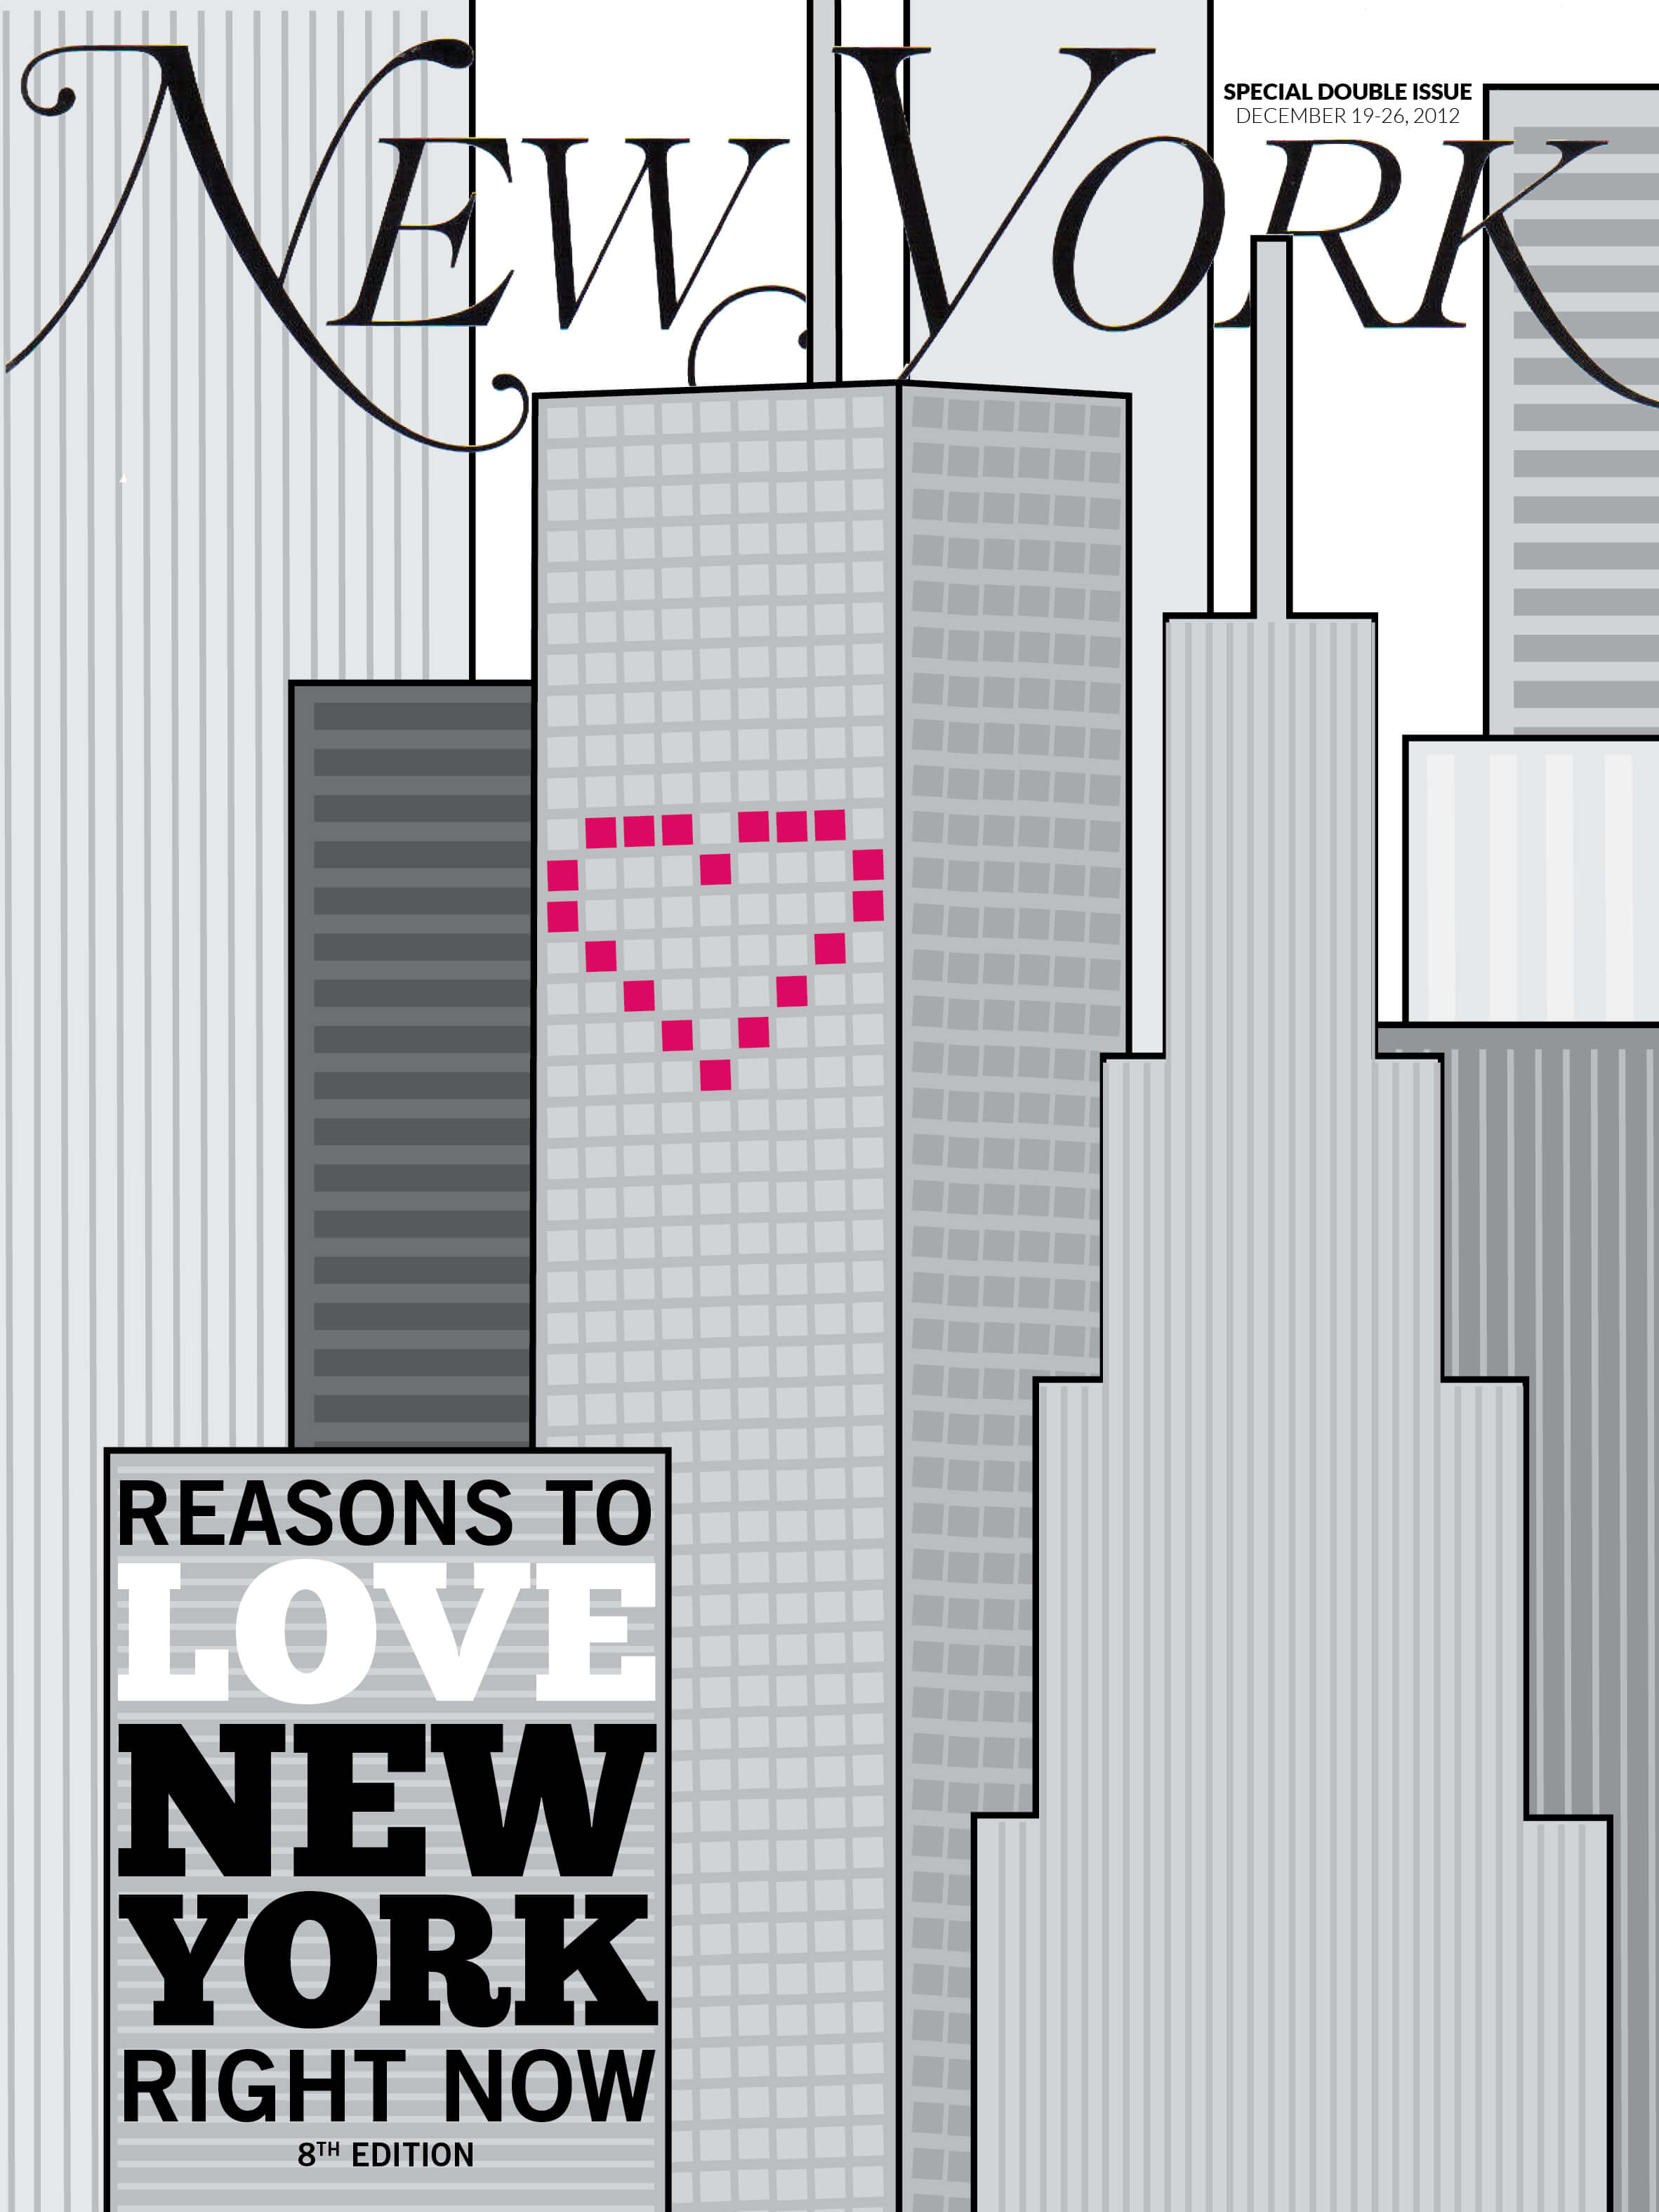 Reasons to Love New York by Megan Hillman